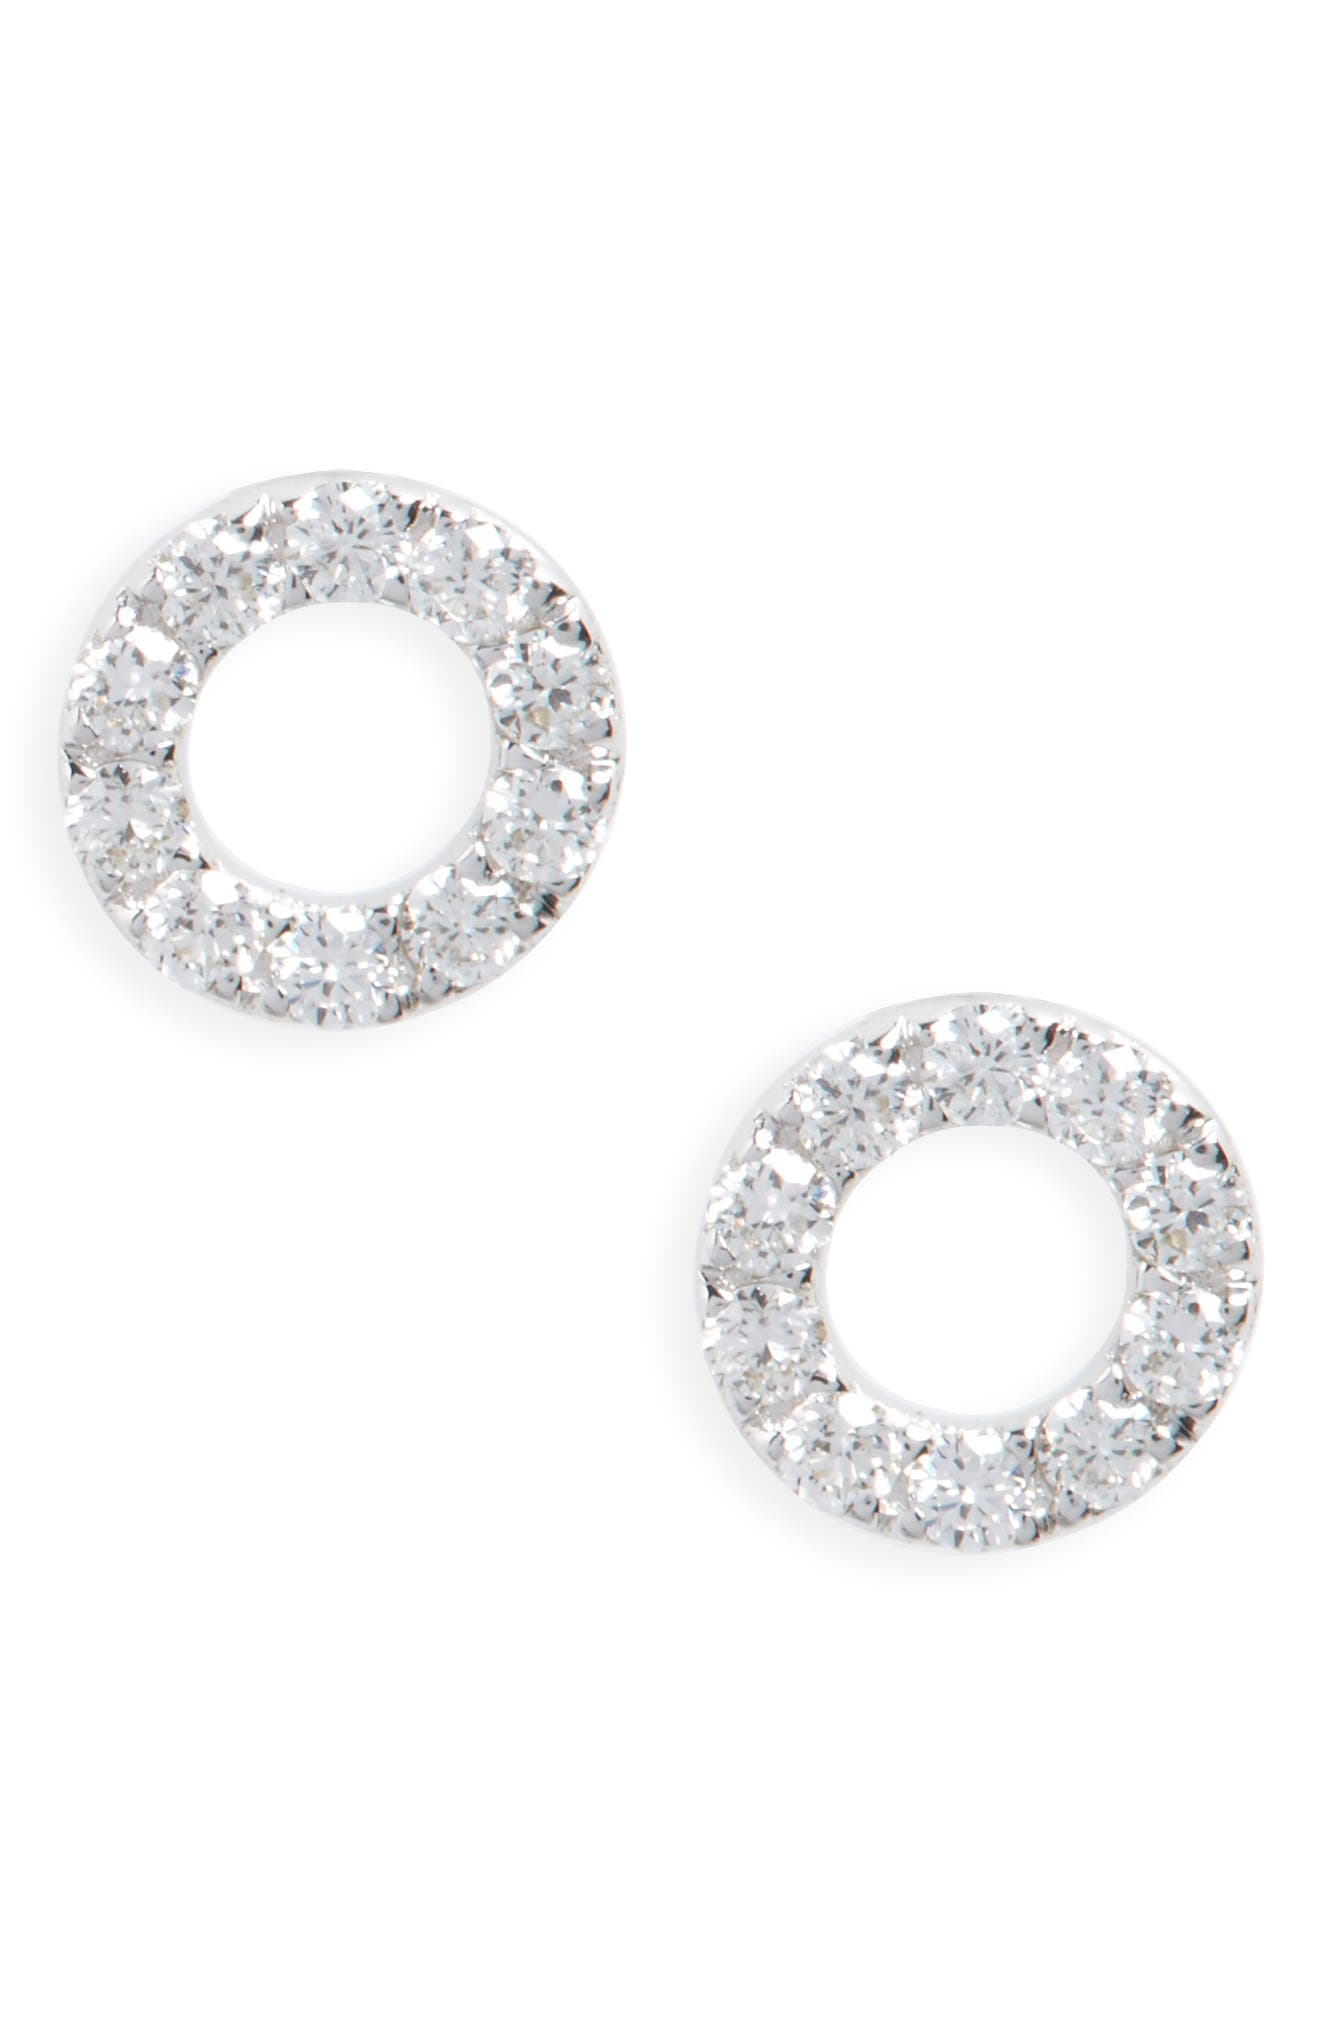 Simple Obsessions Geo Circle Diamond Stud Earrings,                             Main thumbnail 1, color,                             White Gold